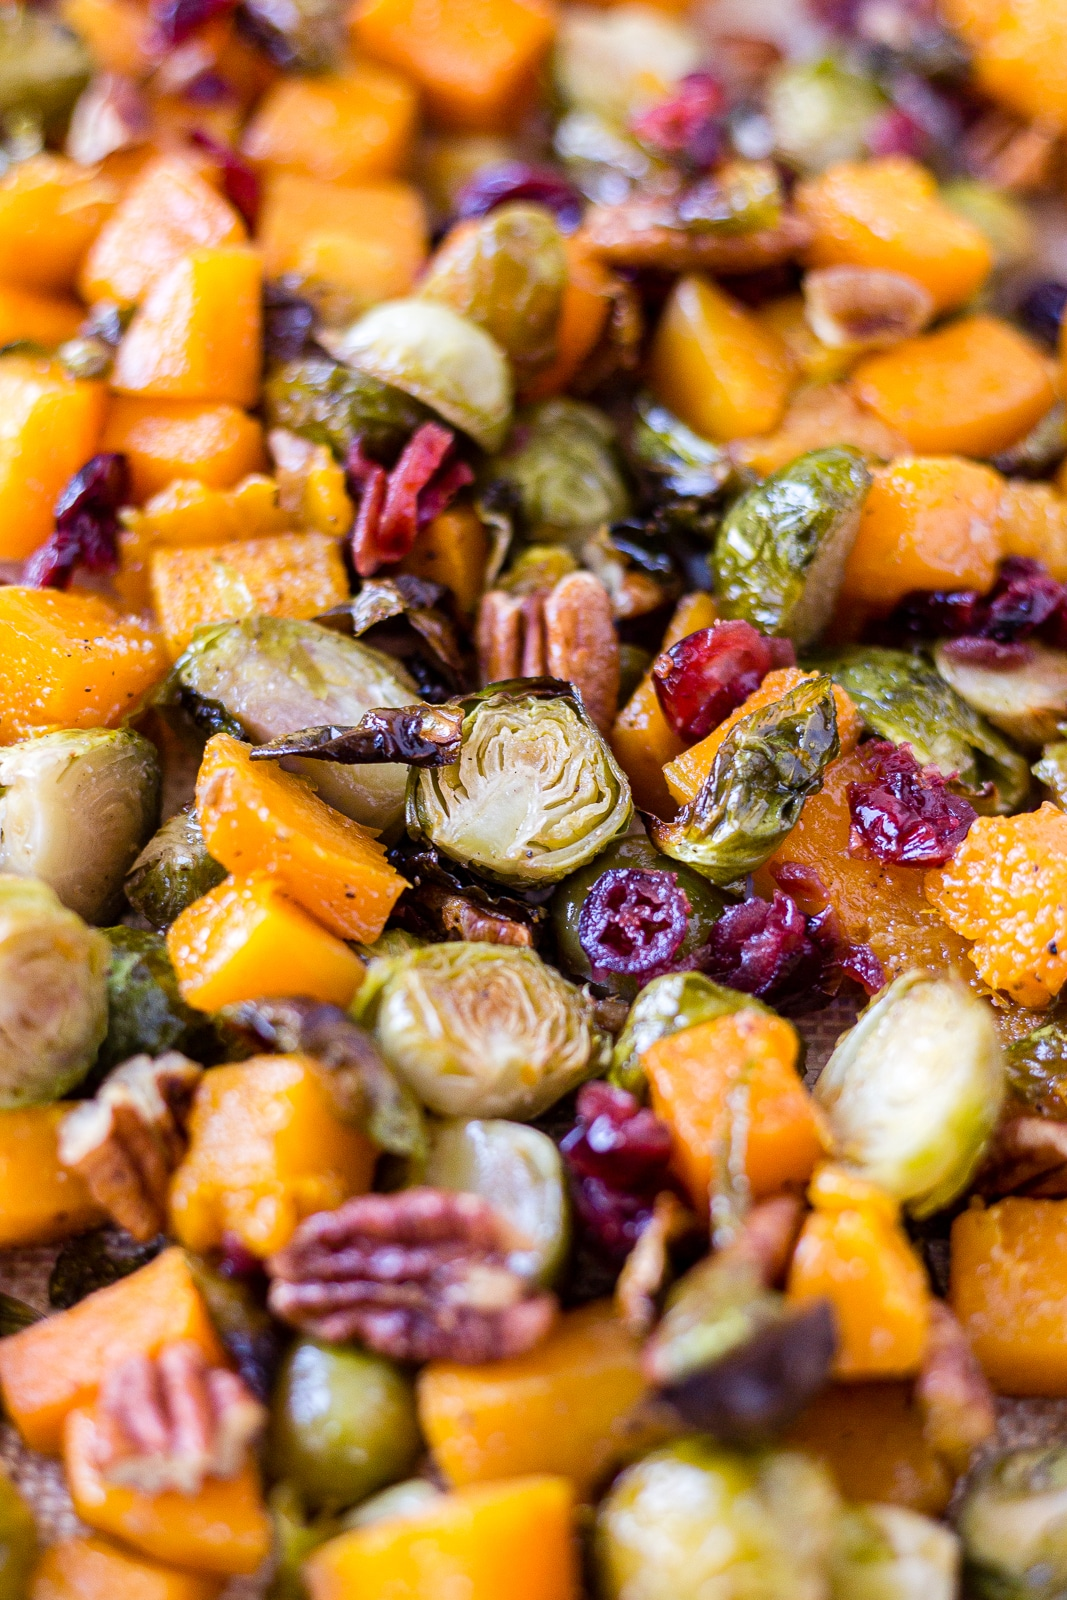 brussel sprouts and butternut squash roasted on a sheet pan with pecans and cranberries